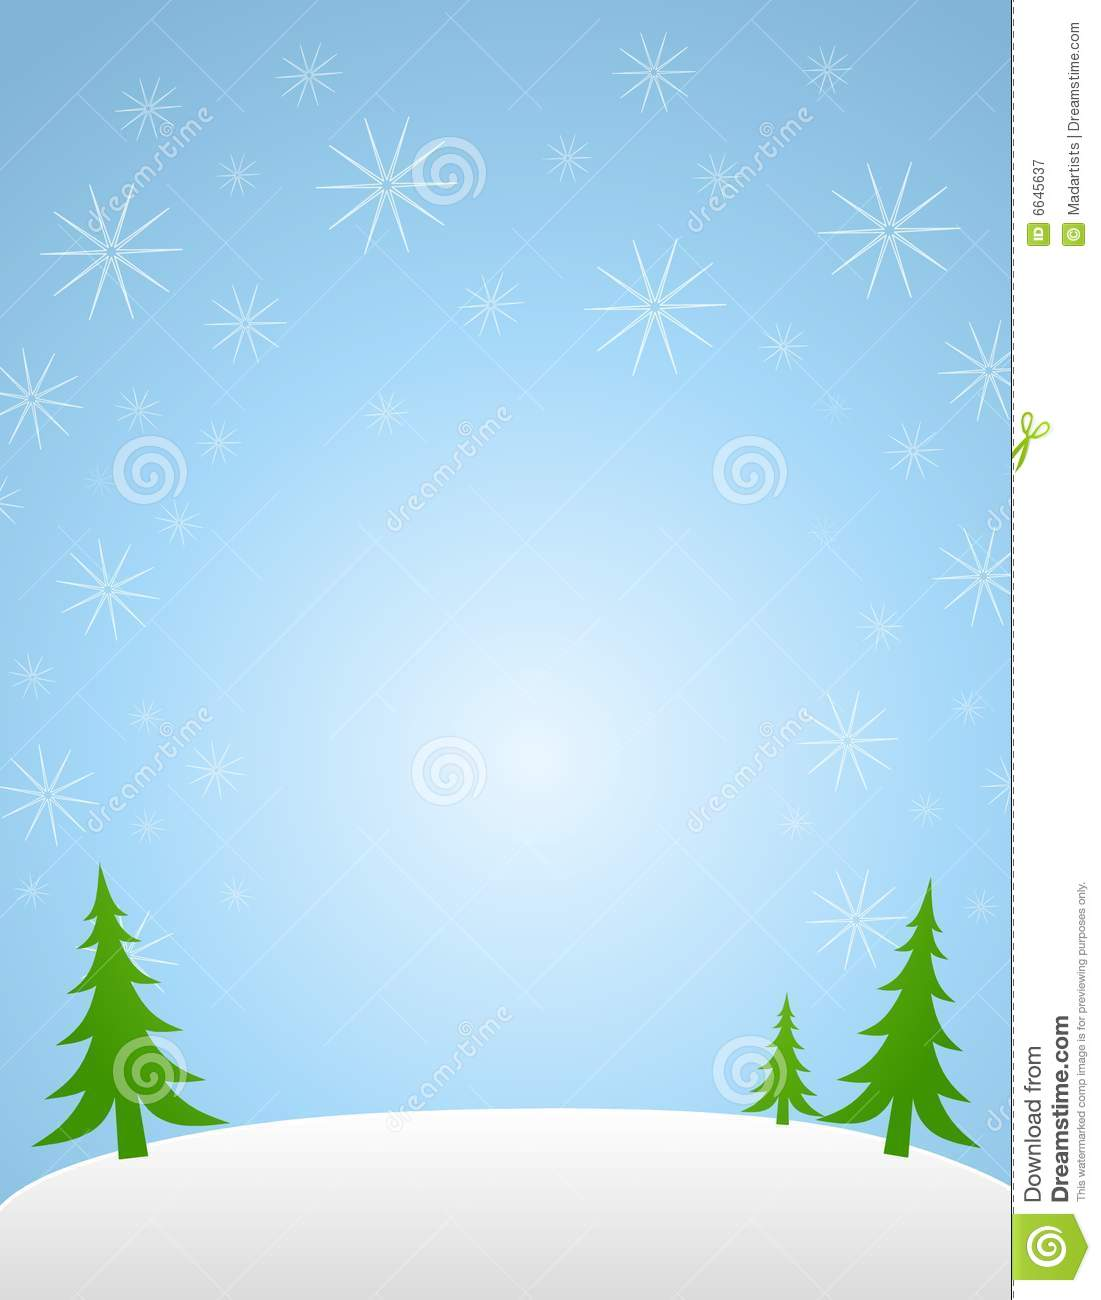 simple winter background stock illustration  image of image